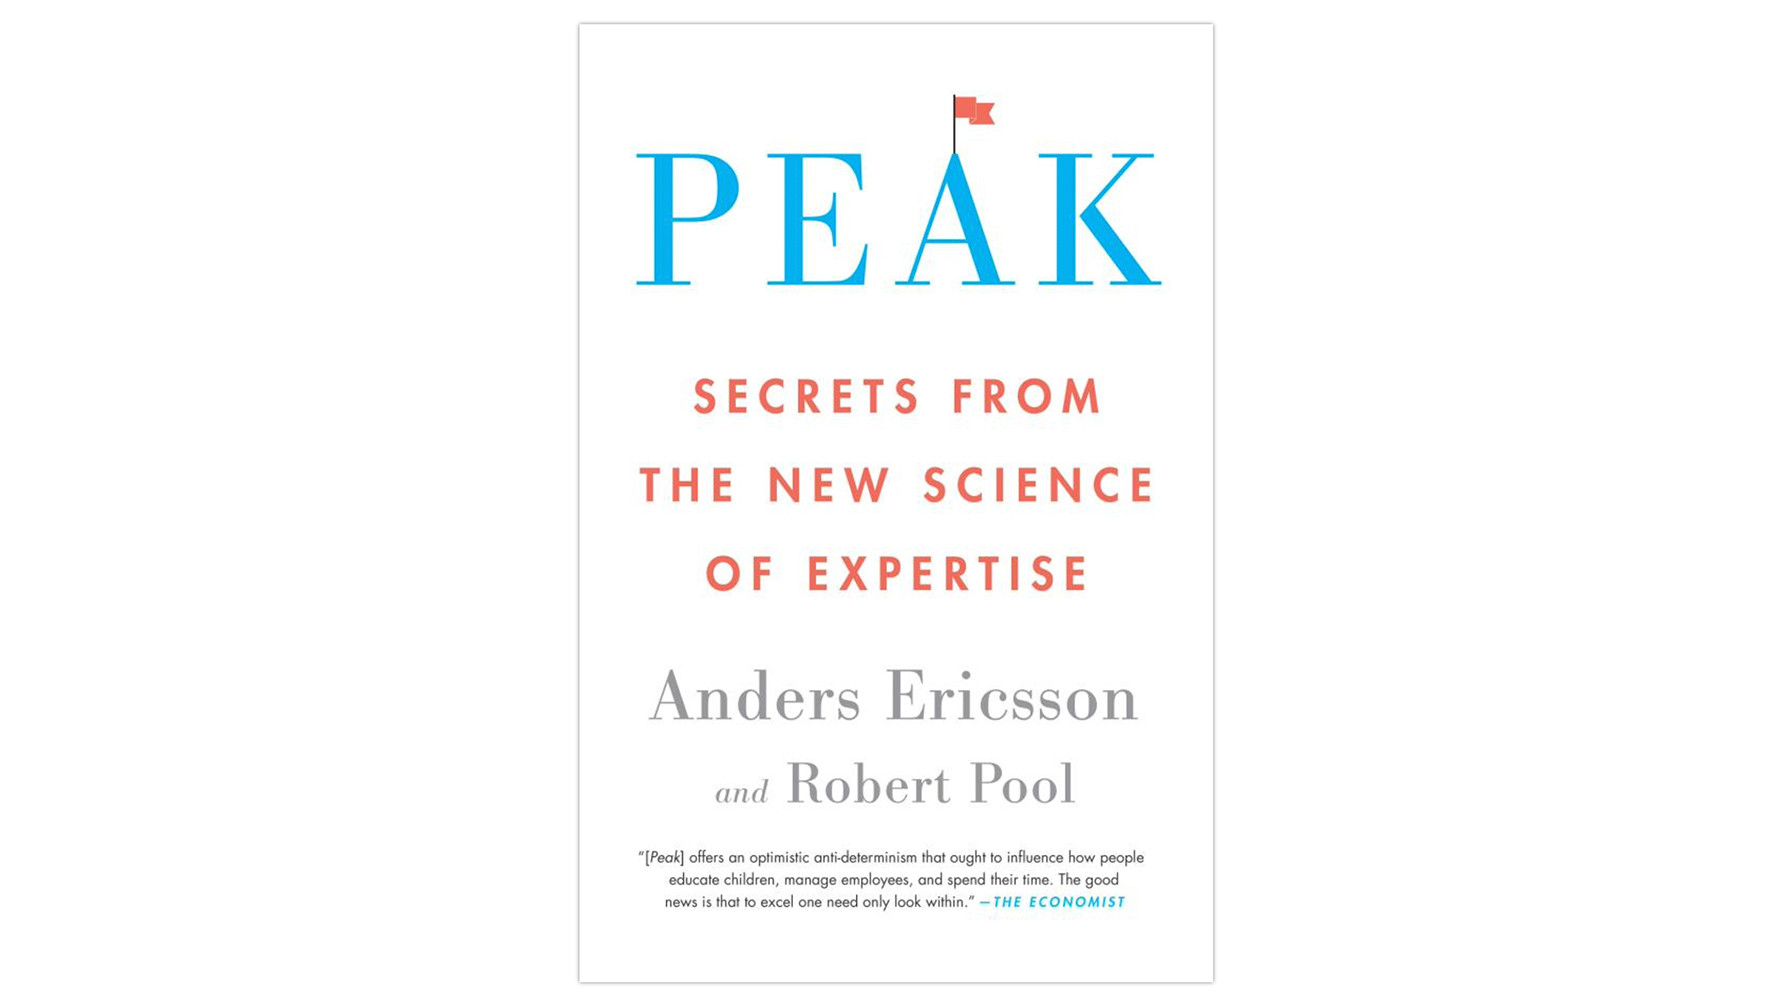 Book by Anders Ericsson and Robert Pool.